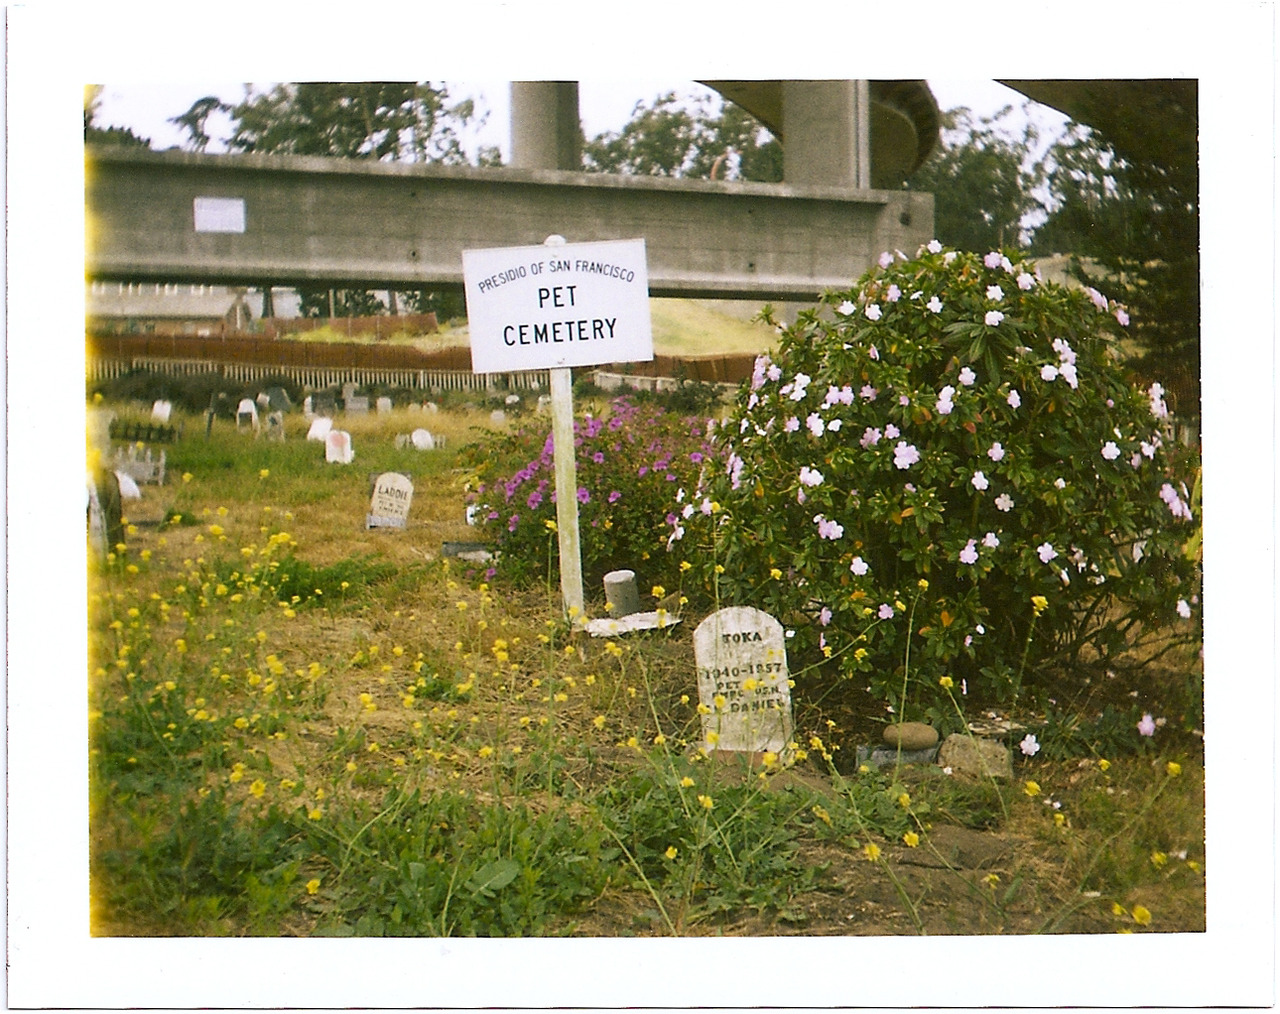 polaroidsf: Pet Cemetery